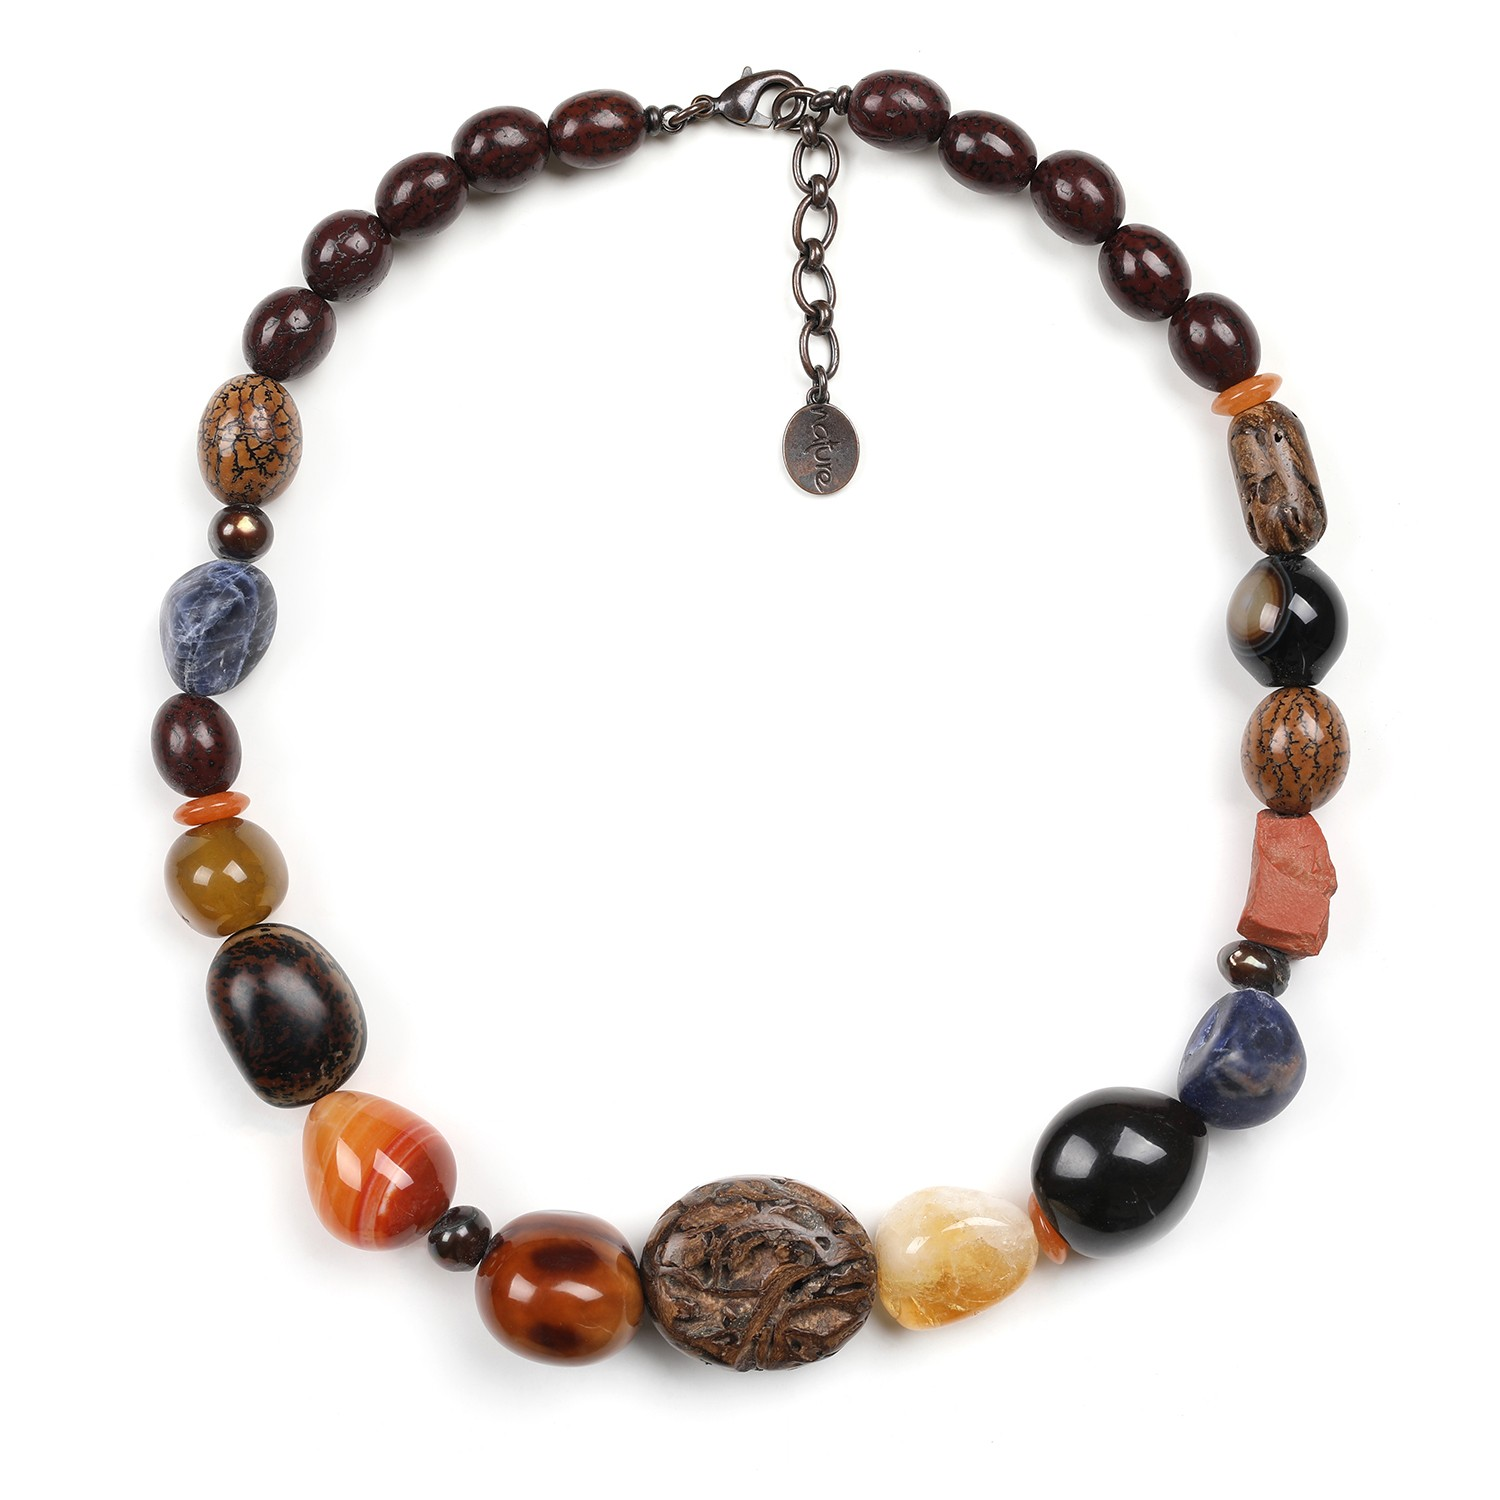 MALAWI assorted beads necklace